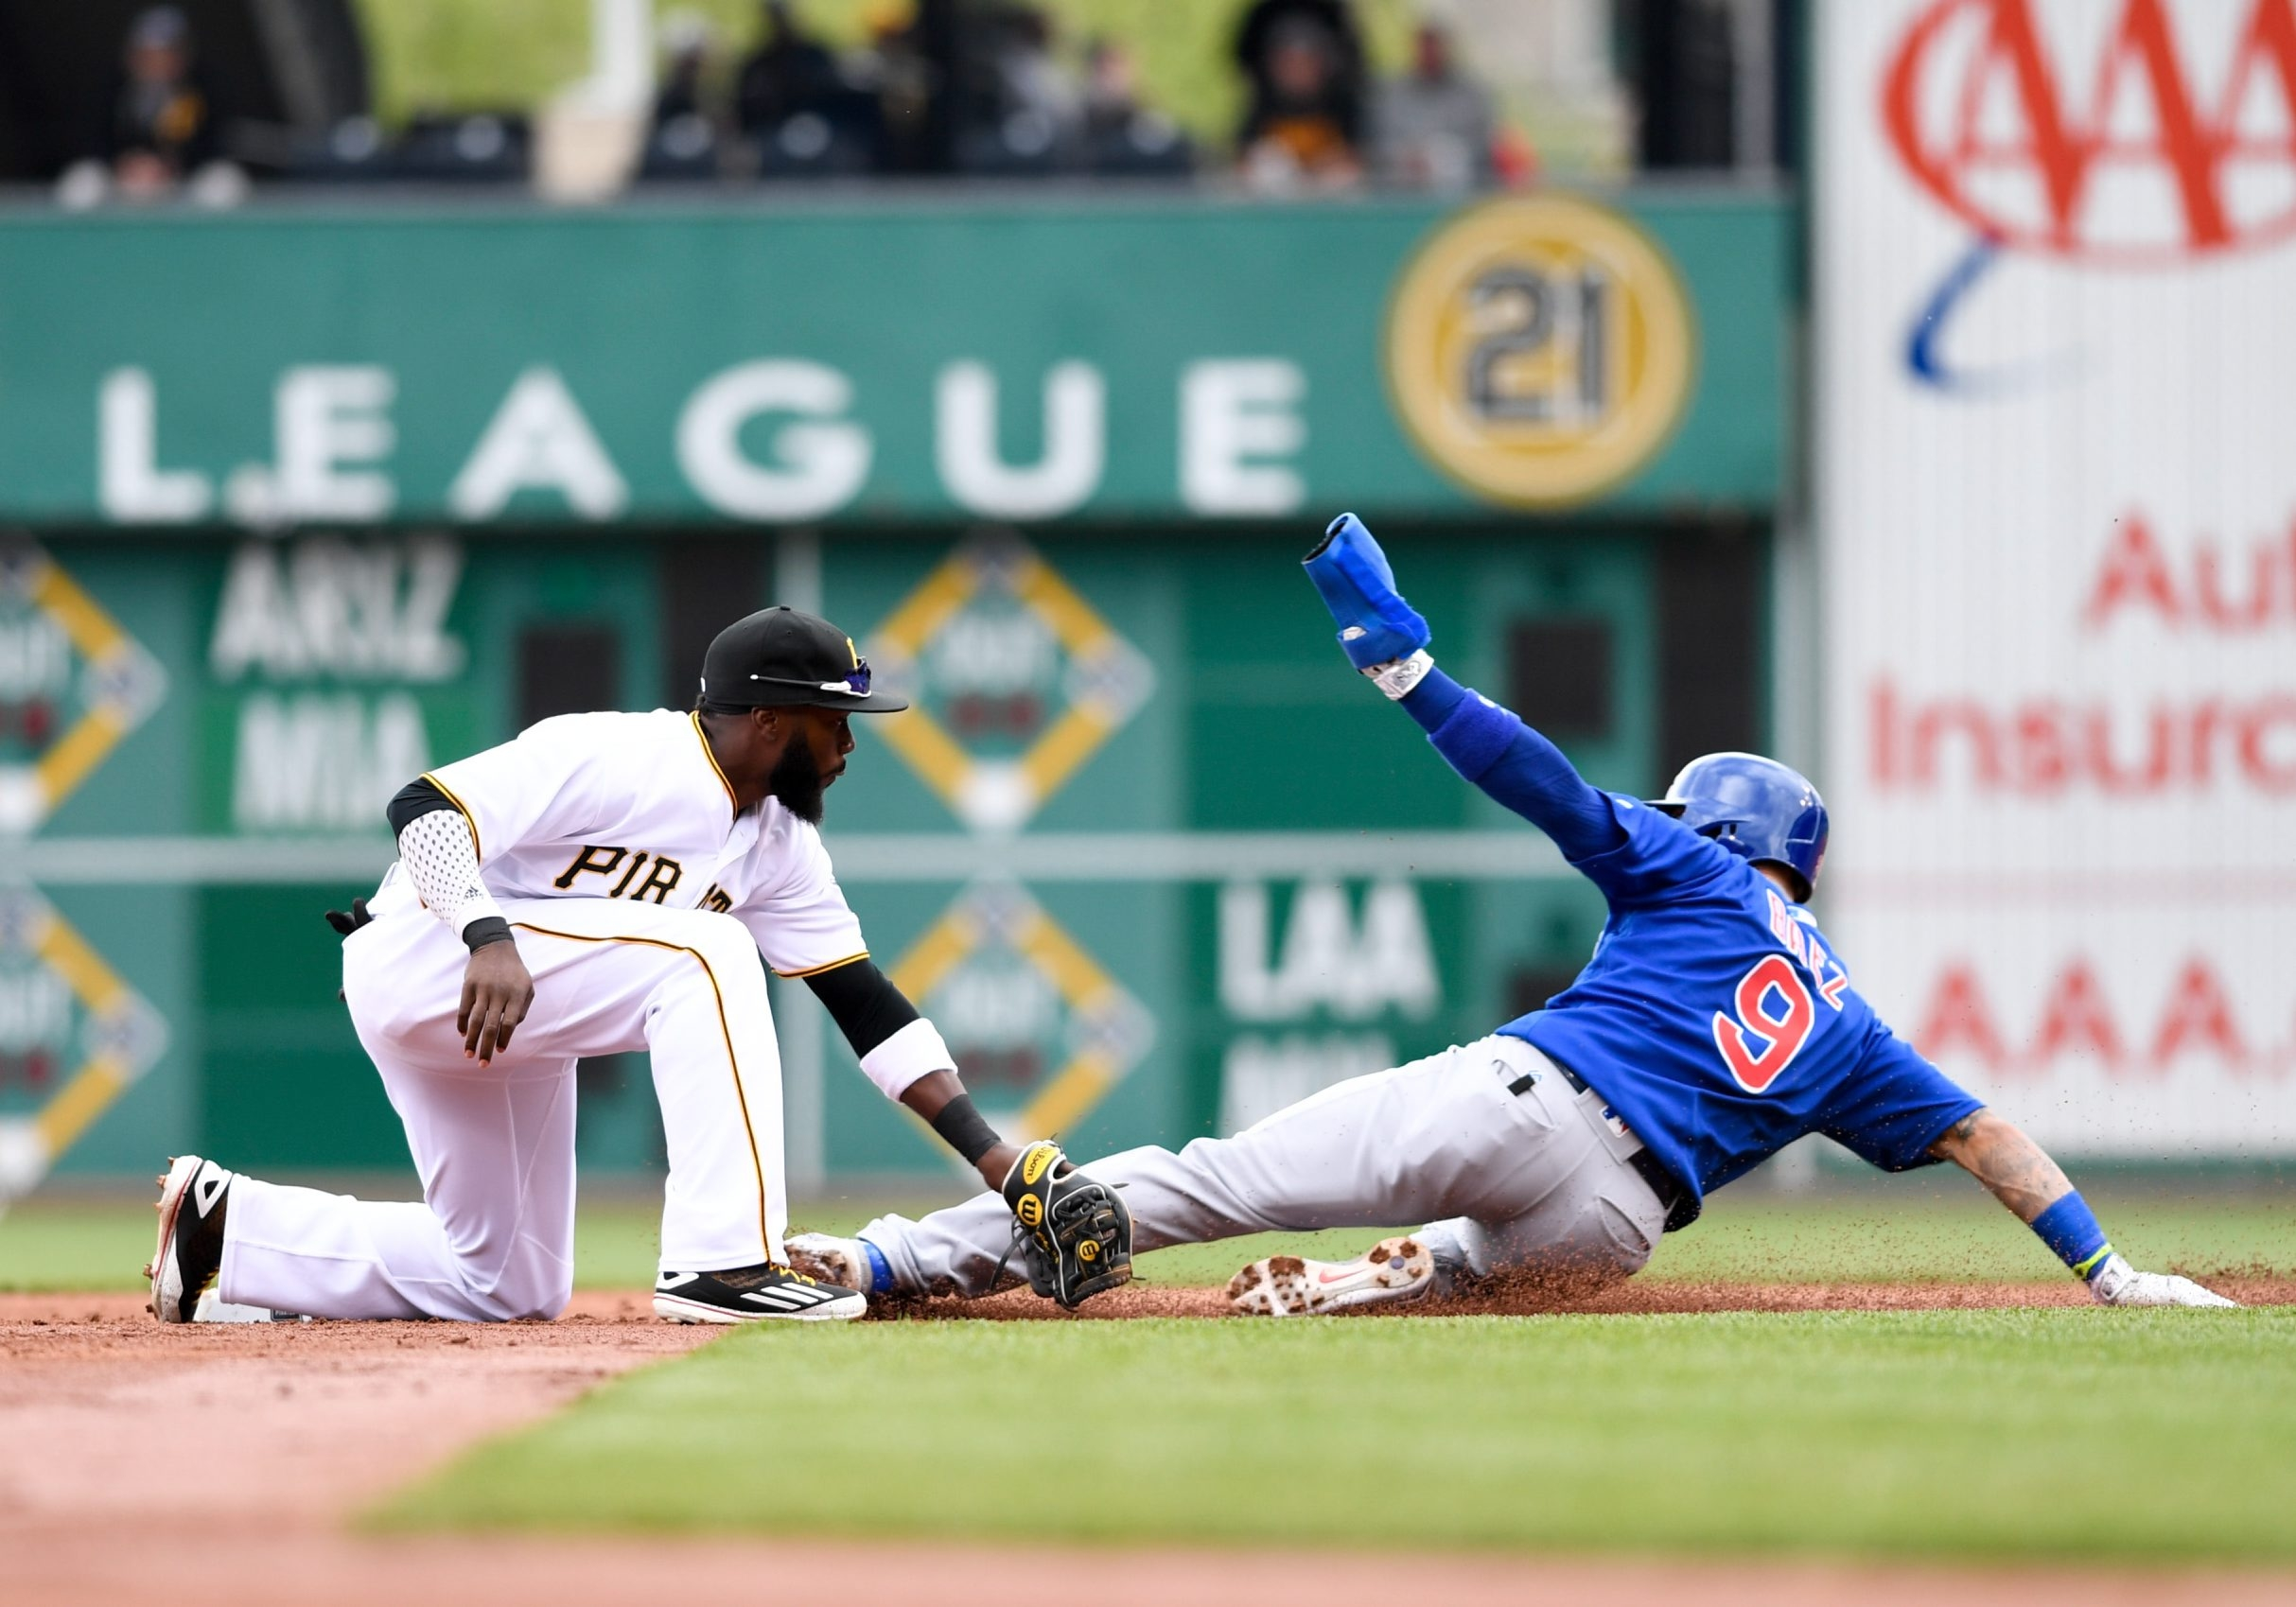 Javier Baez of the Cubs is caught stealing in a recent game against the Pirates.